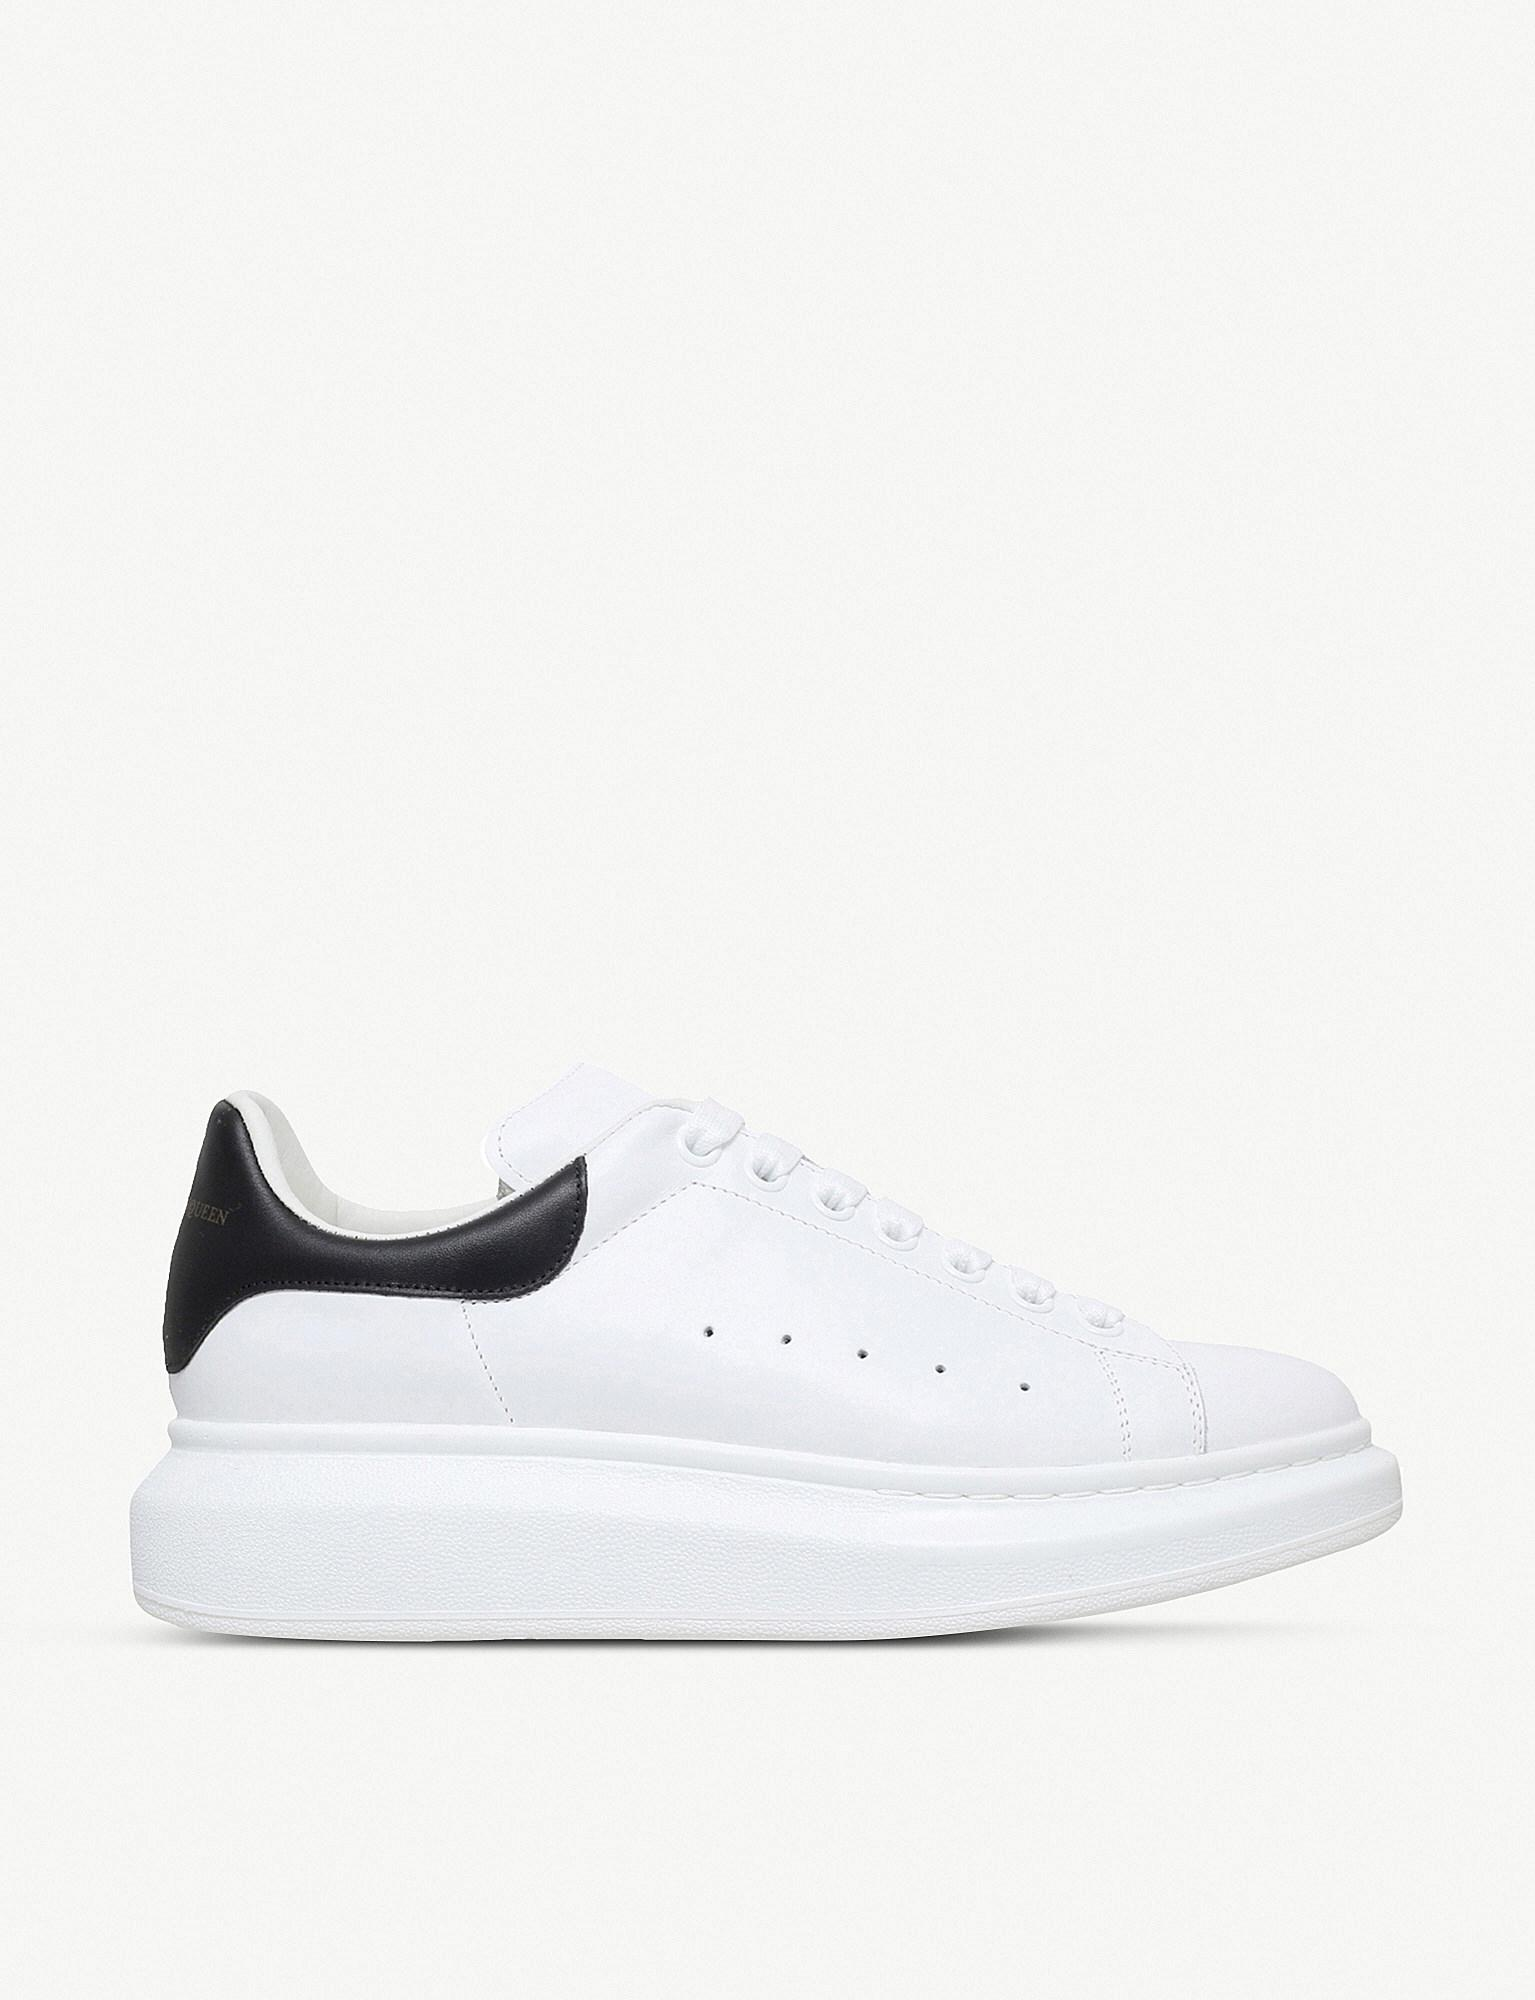 c371f711b Lyst - Alexander McQueen Mens White Show Leather Platform Sneakers ...